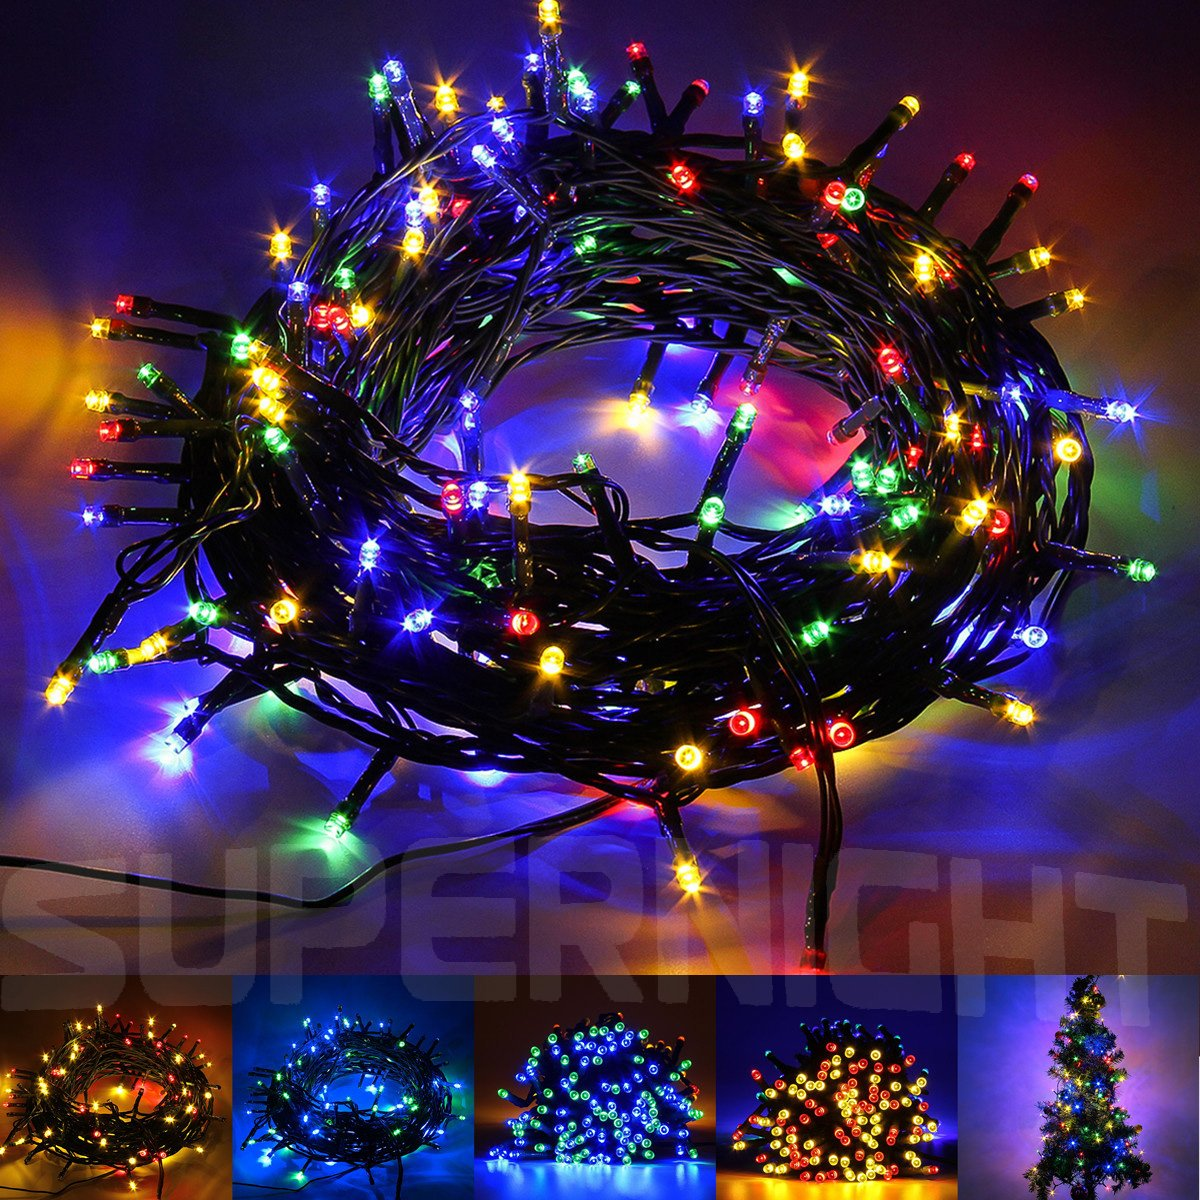 Amazon.com: SUPERNIGHT DC 24V 200 LED Decorative Christmas Lights ...